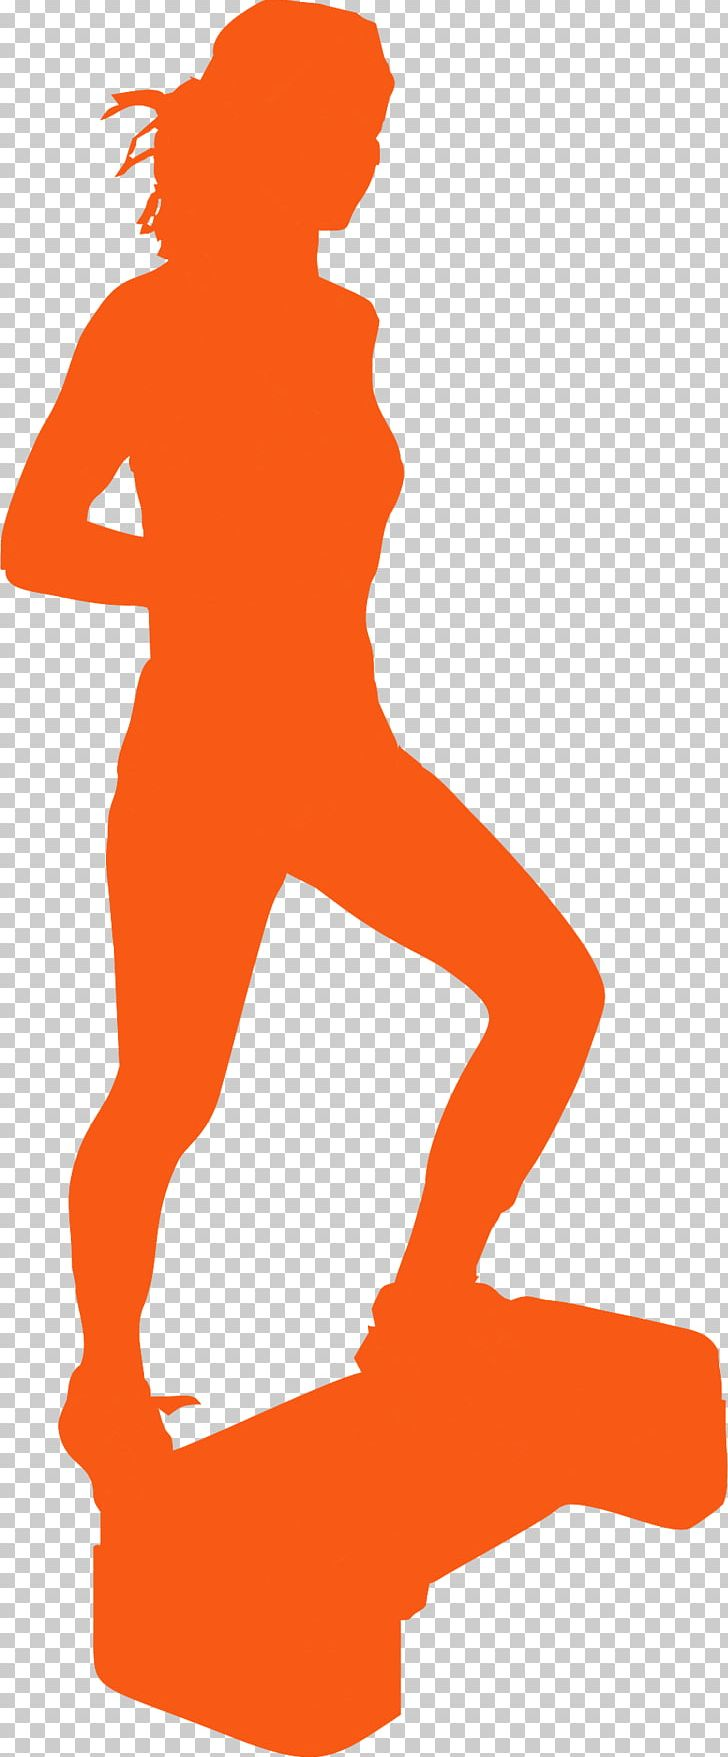 Step Aerobics Aerobic Exercise PNG, Clipart, Aerobic Exercise, Aerobics, Area, Arm, Art Free PNG Download